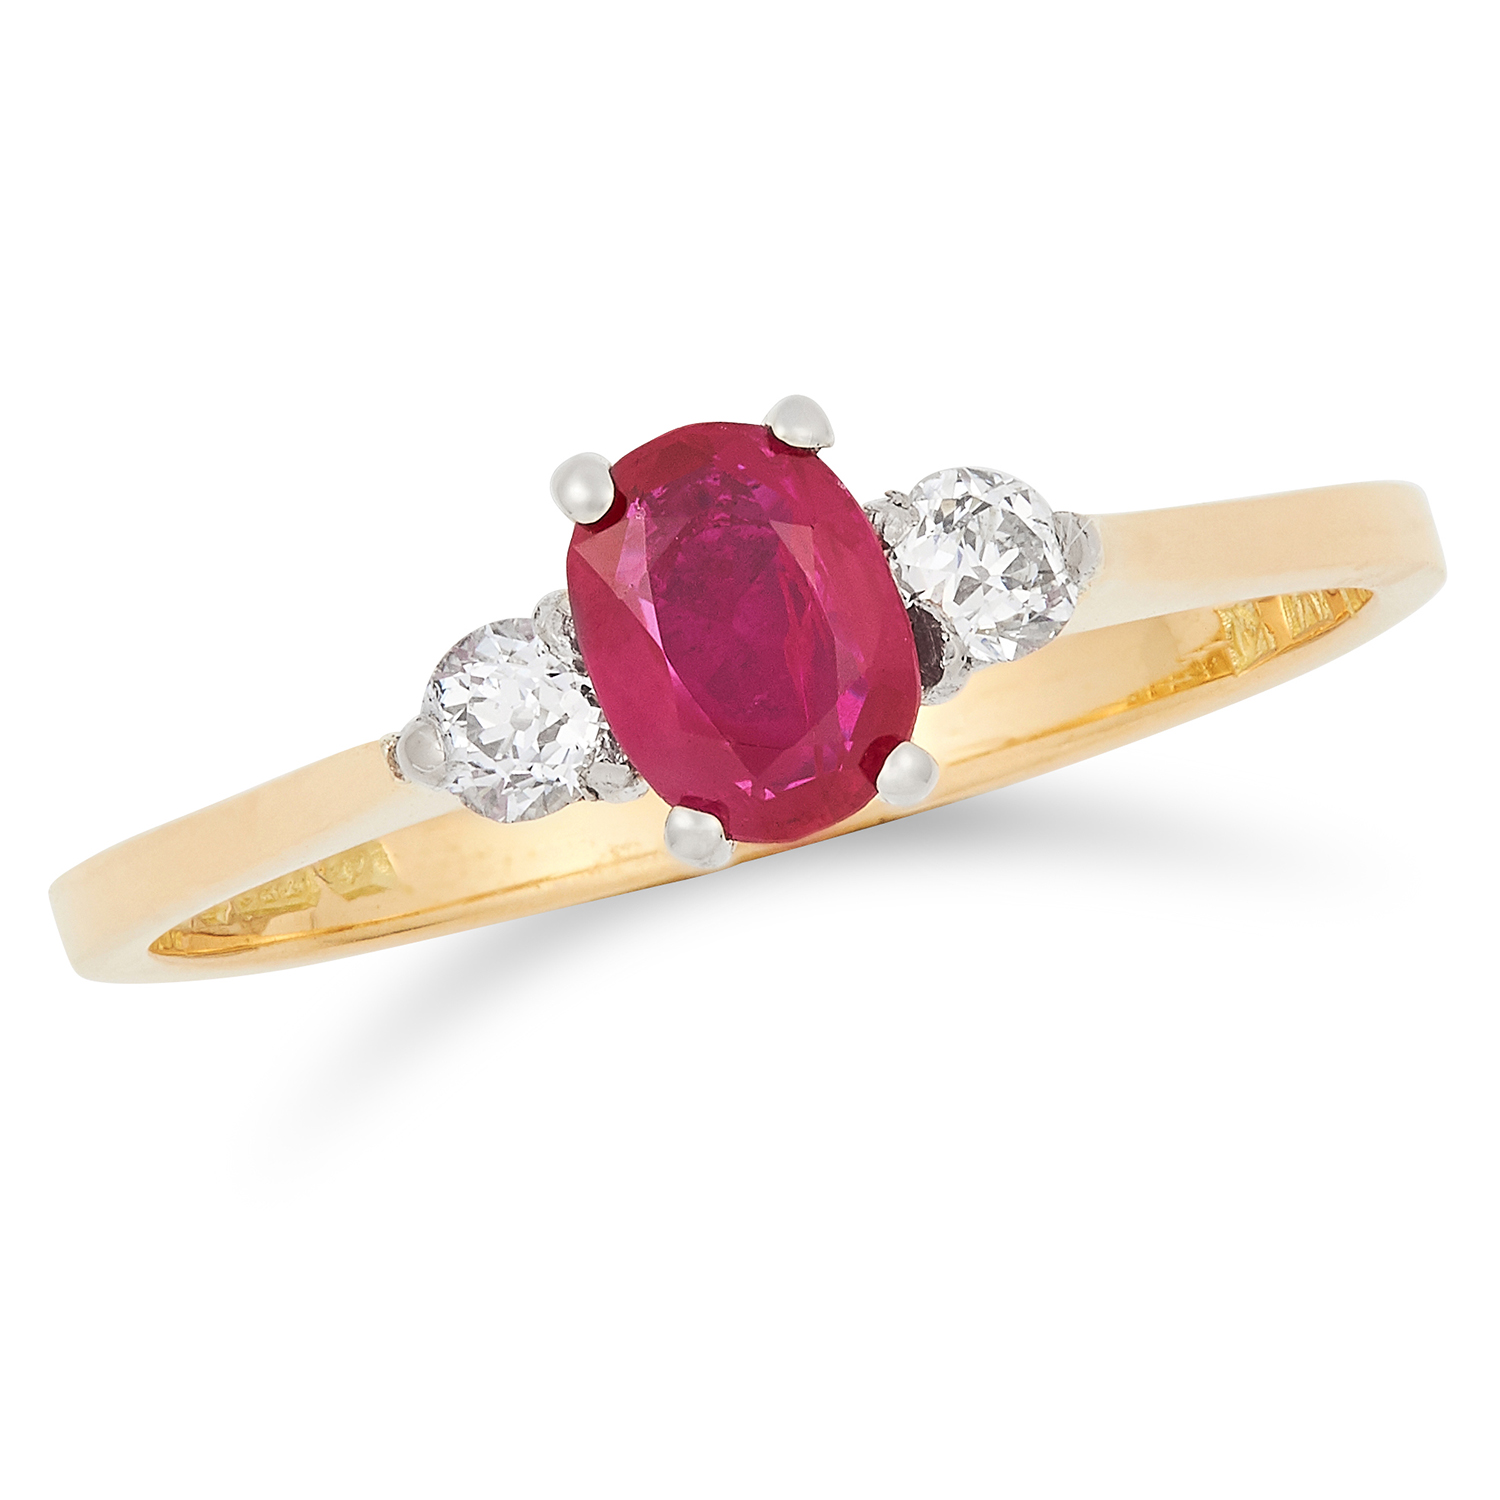 RUBY AND DIAMOND RING set with an oval cut ruby between two round cut diamonds, size L / 6, 2g.